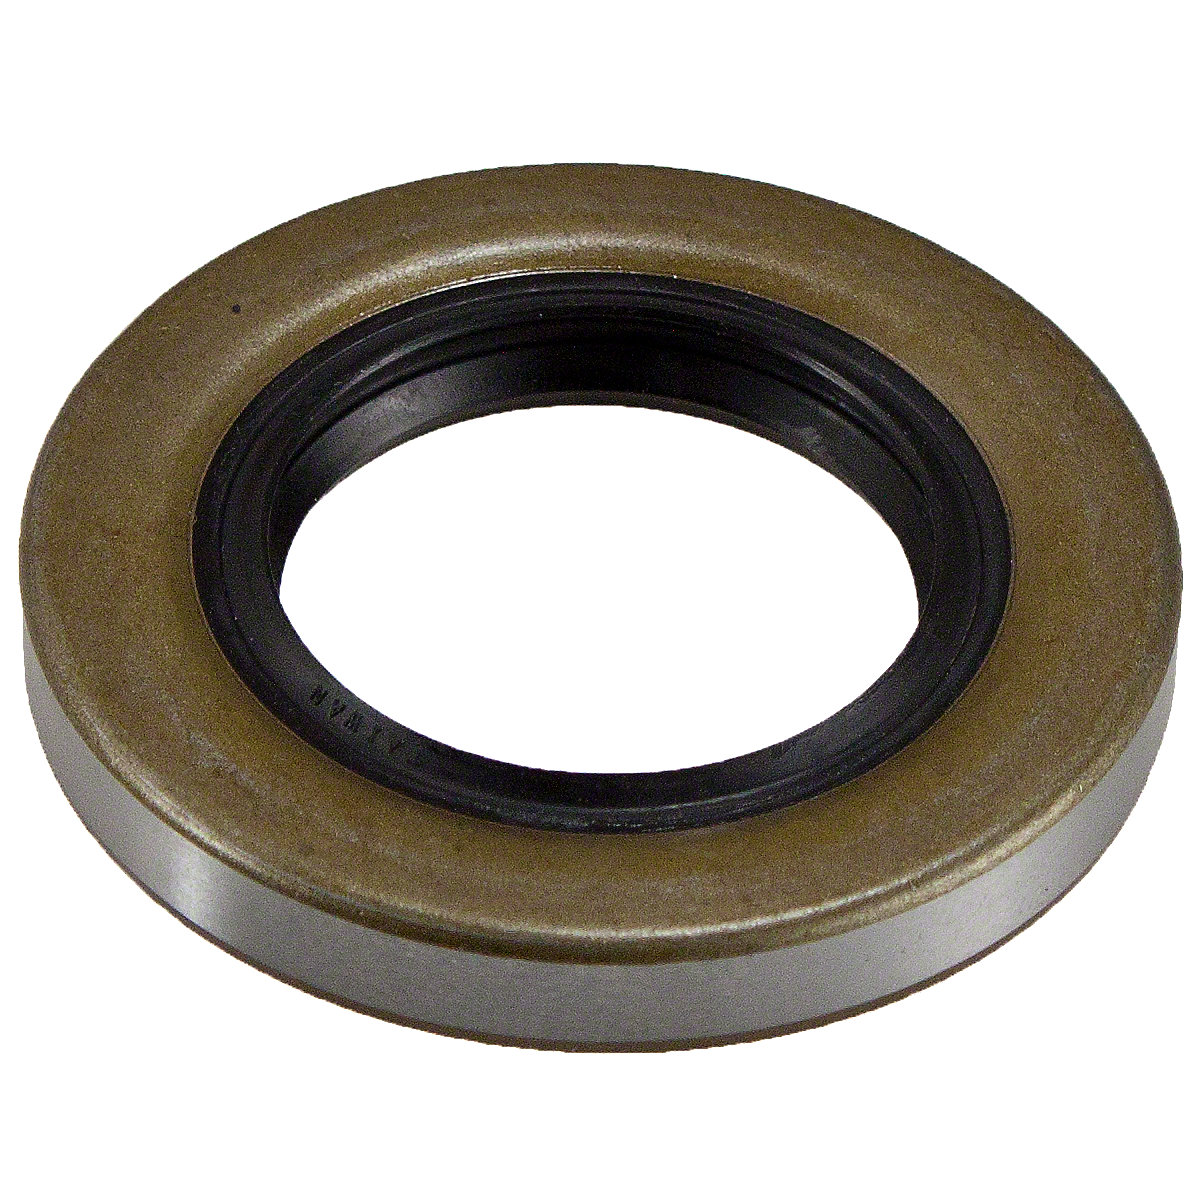 Outer Differential Shaft Seal For Allis Chalmers: D10, D12, D14, D15, I60.